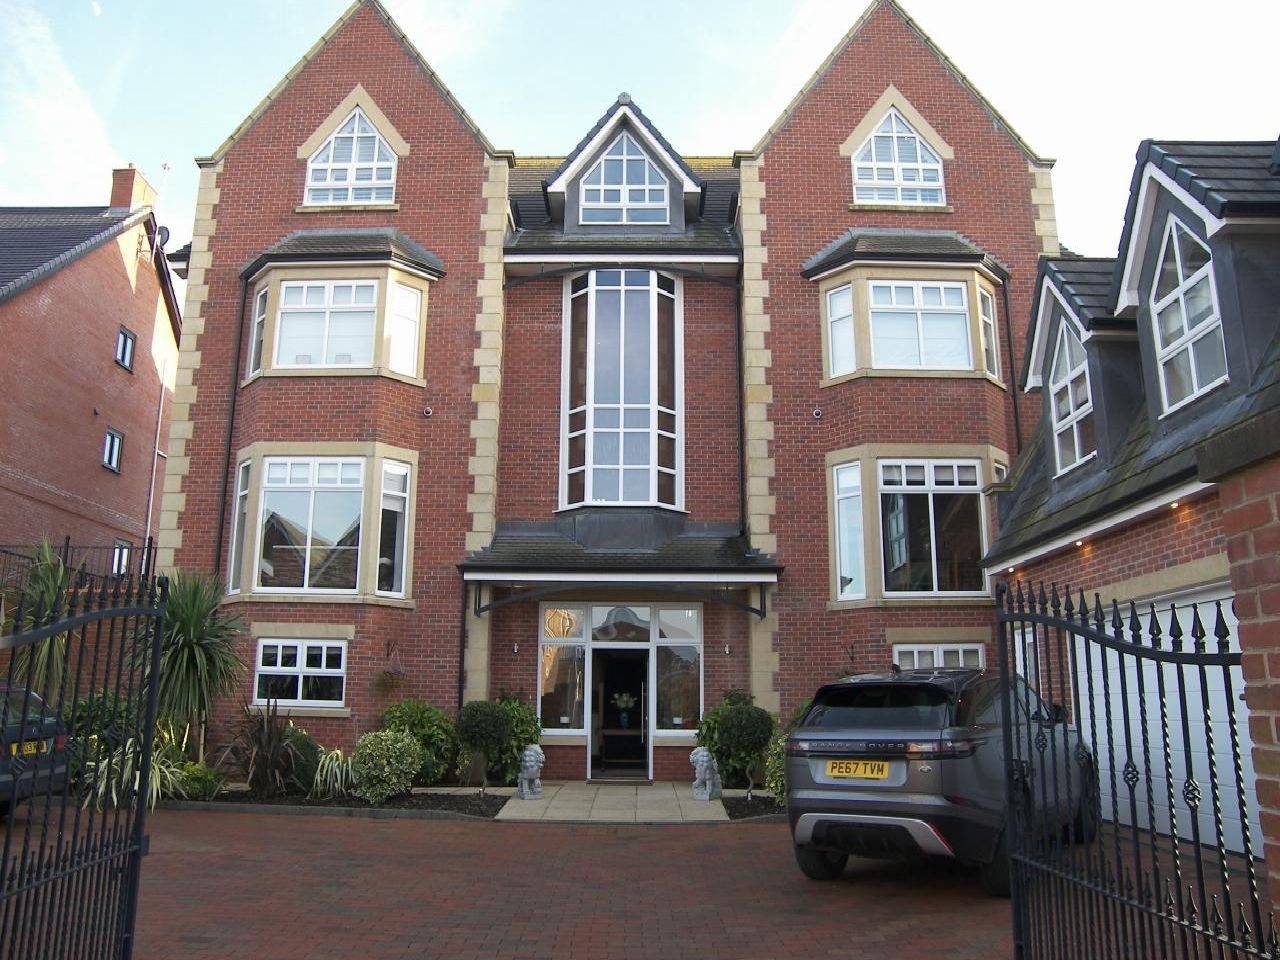 The four-storey property has over 30 rooms including a self-contained one bedroom first floor flat.